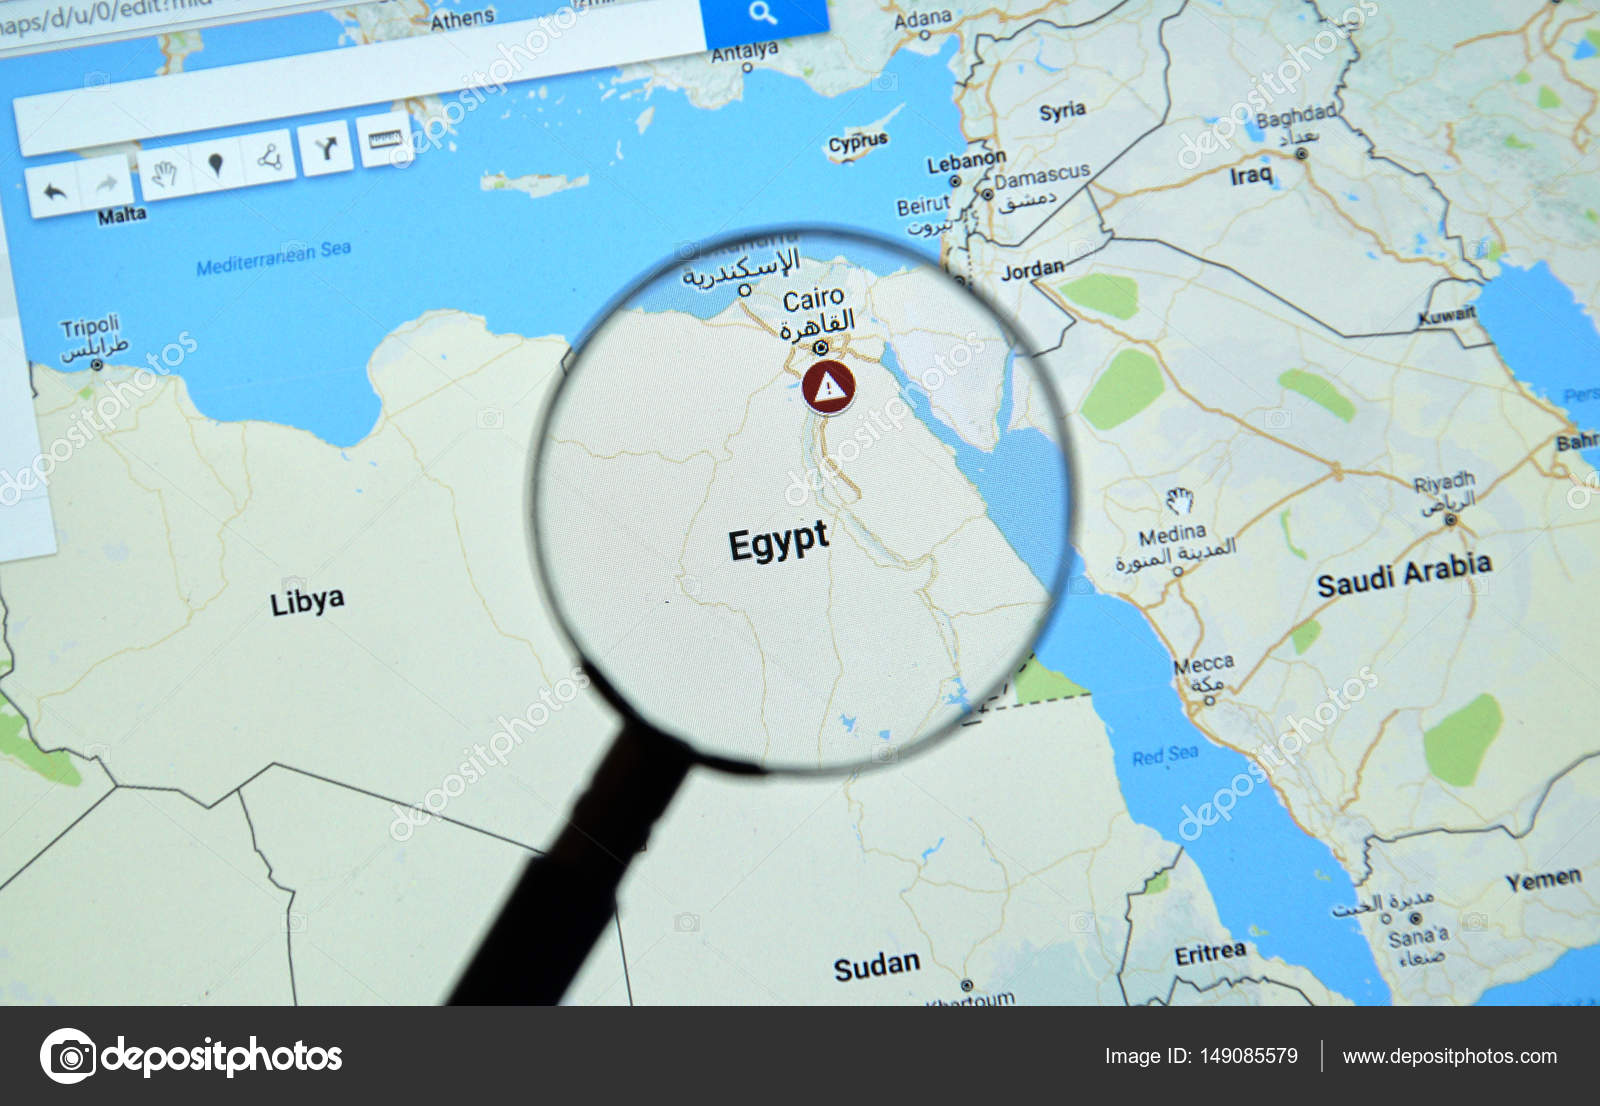 Egypt and cairo on google maps stock editorial photo dennizn egypt and cairo on google maps stock photo gumiabroncs Gallery